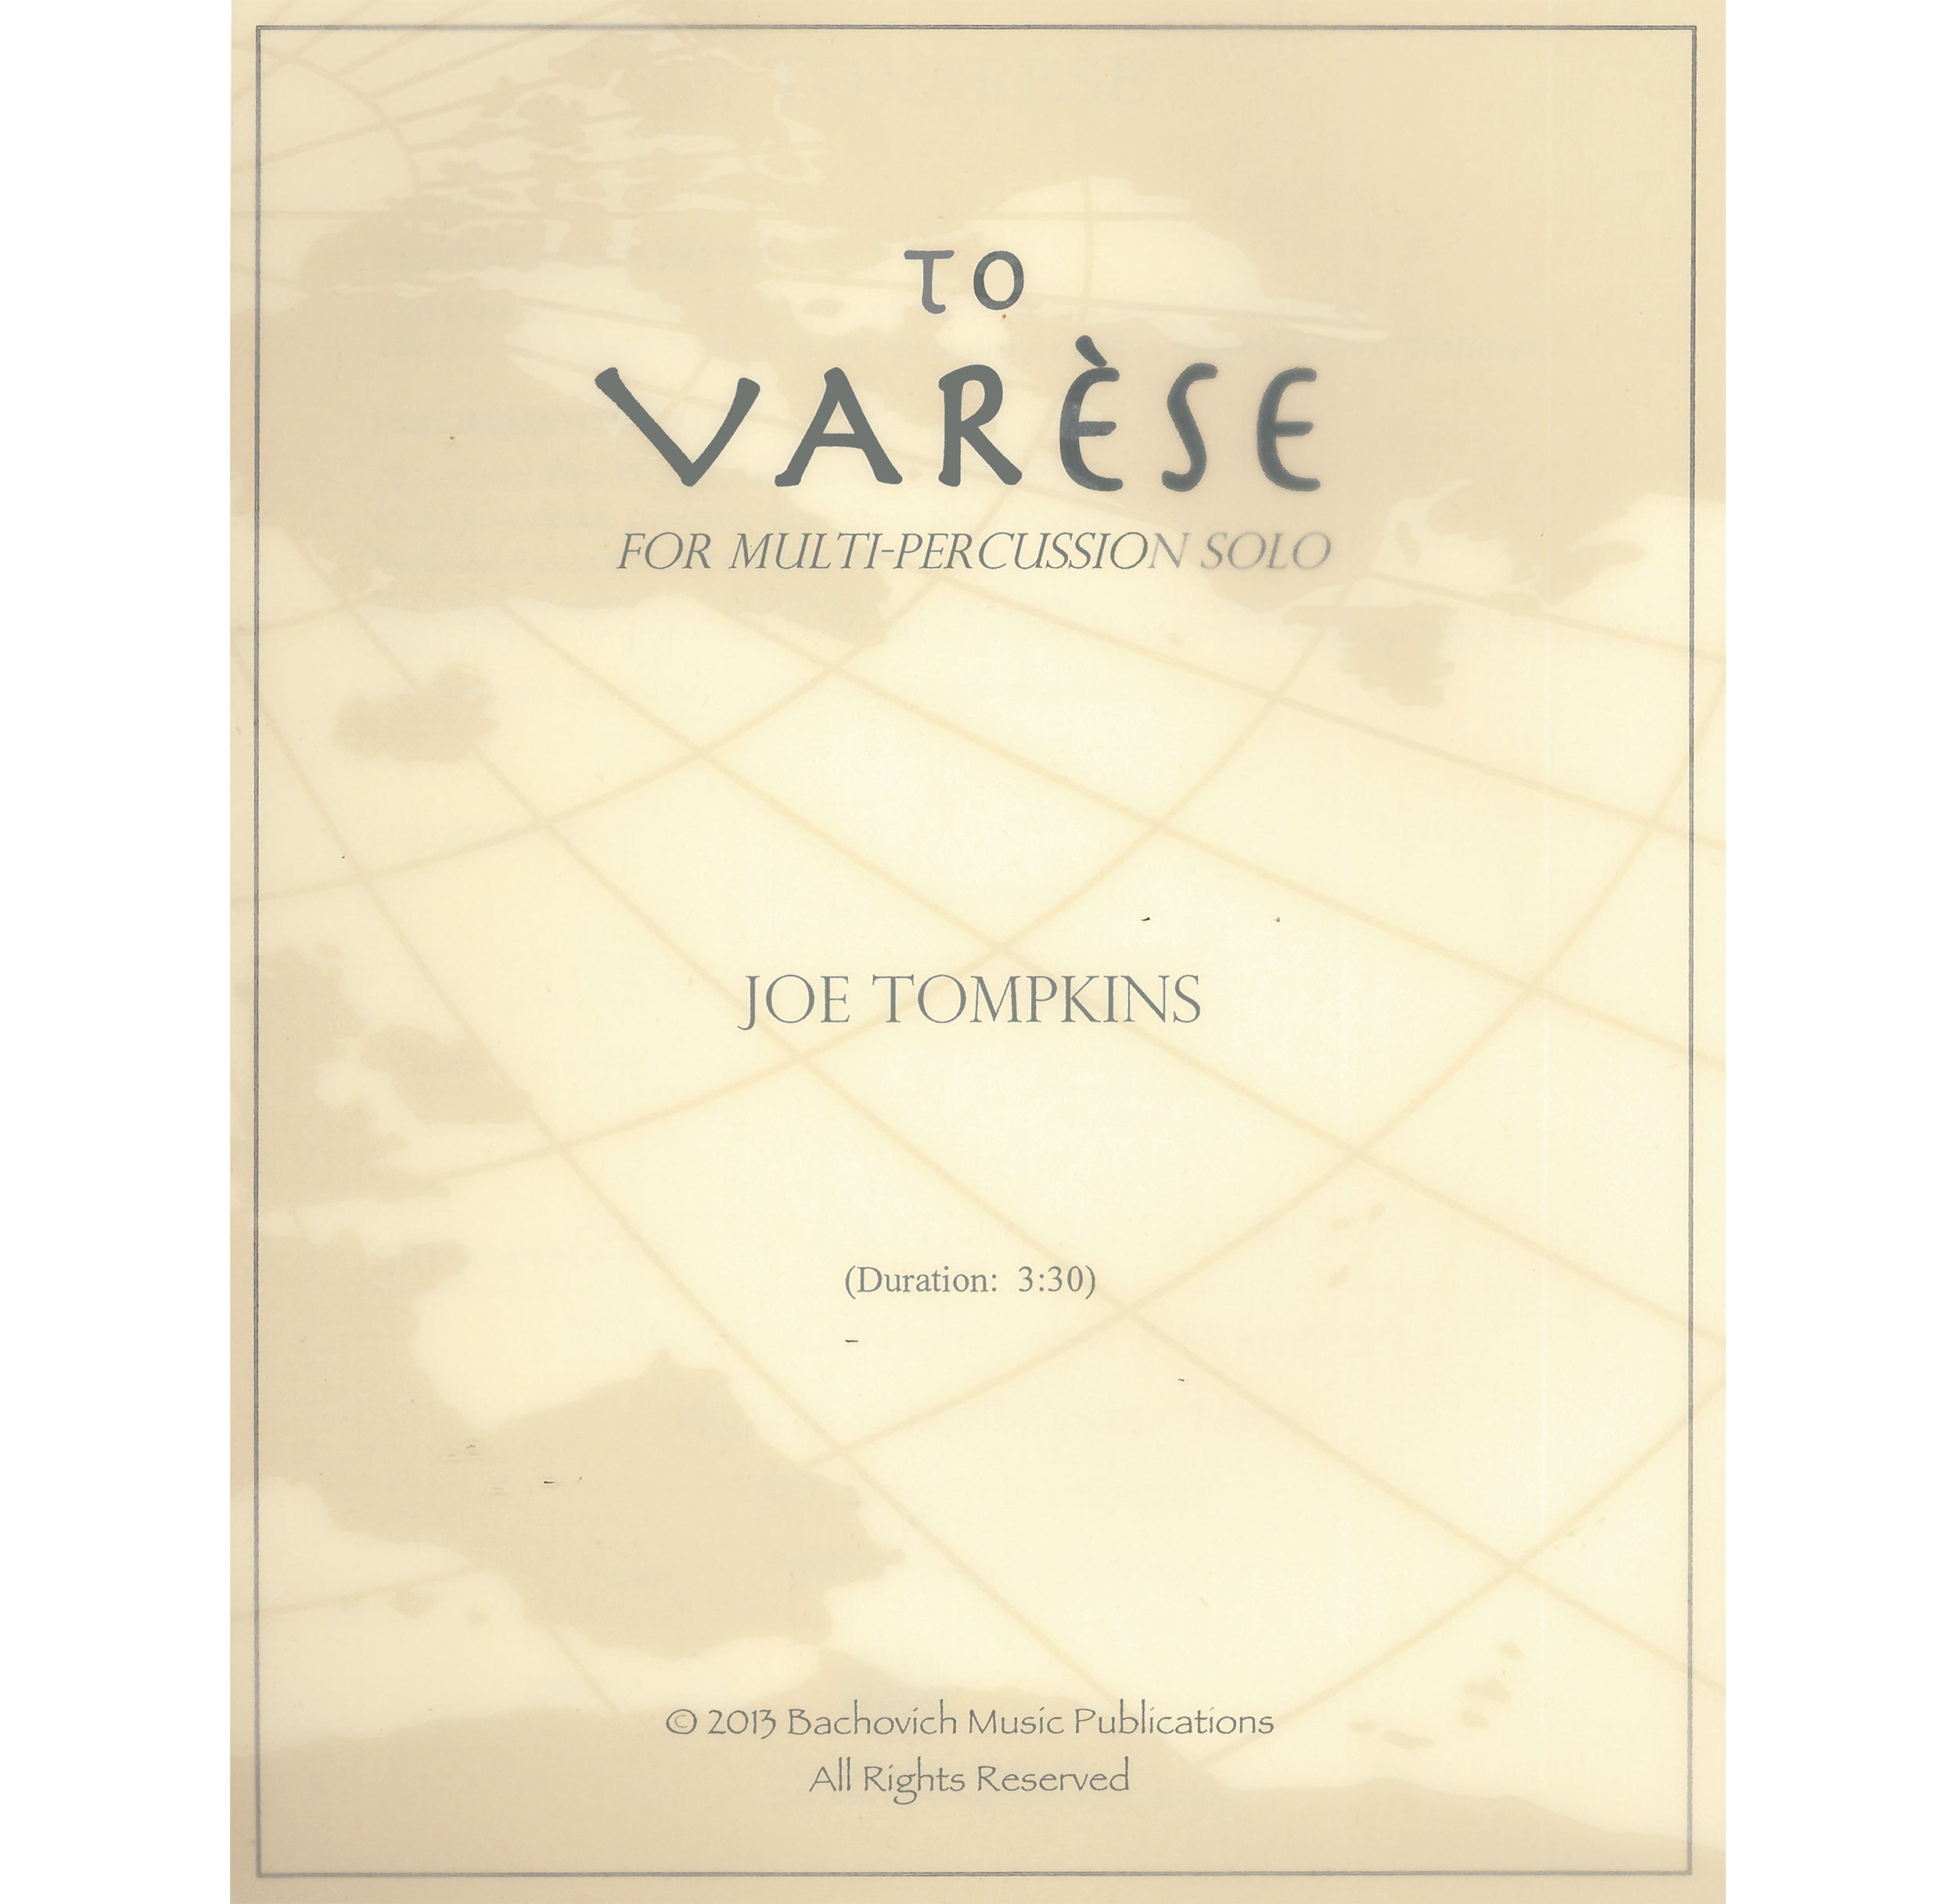 To Varese by Joseph Tompkins